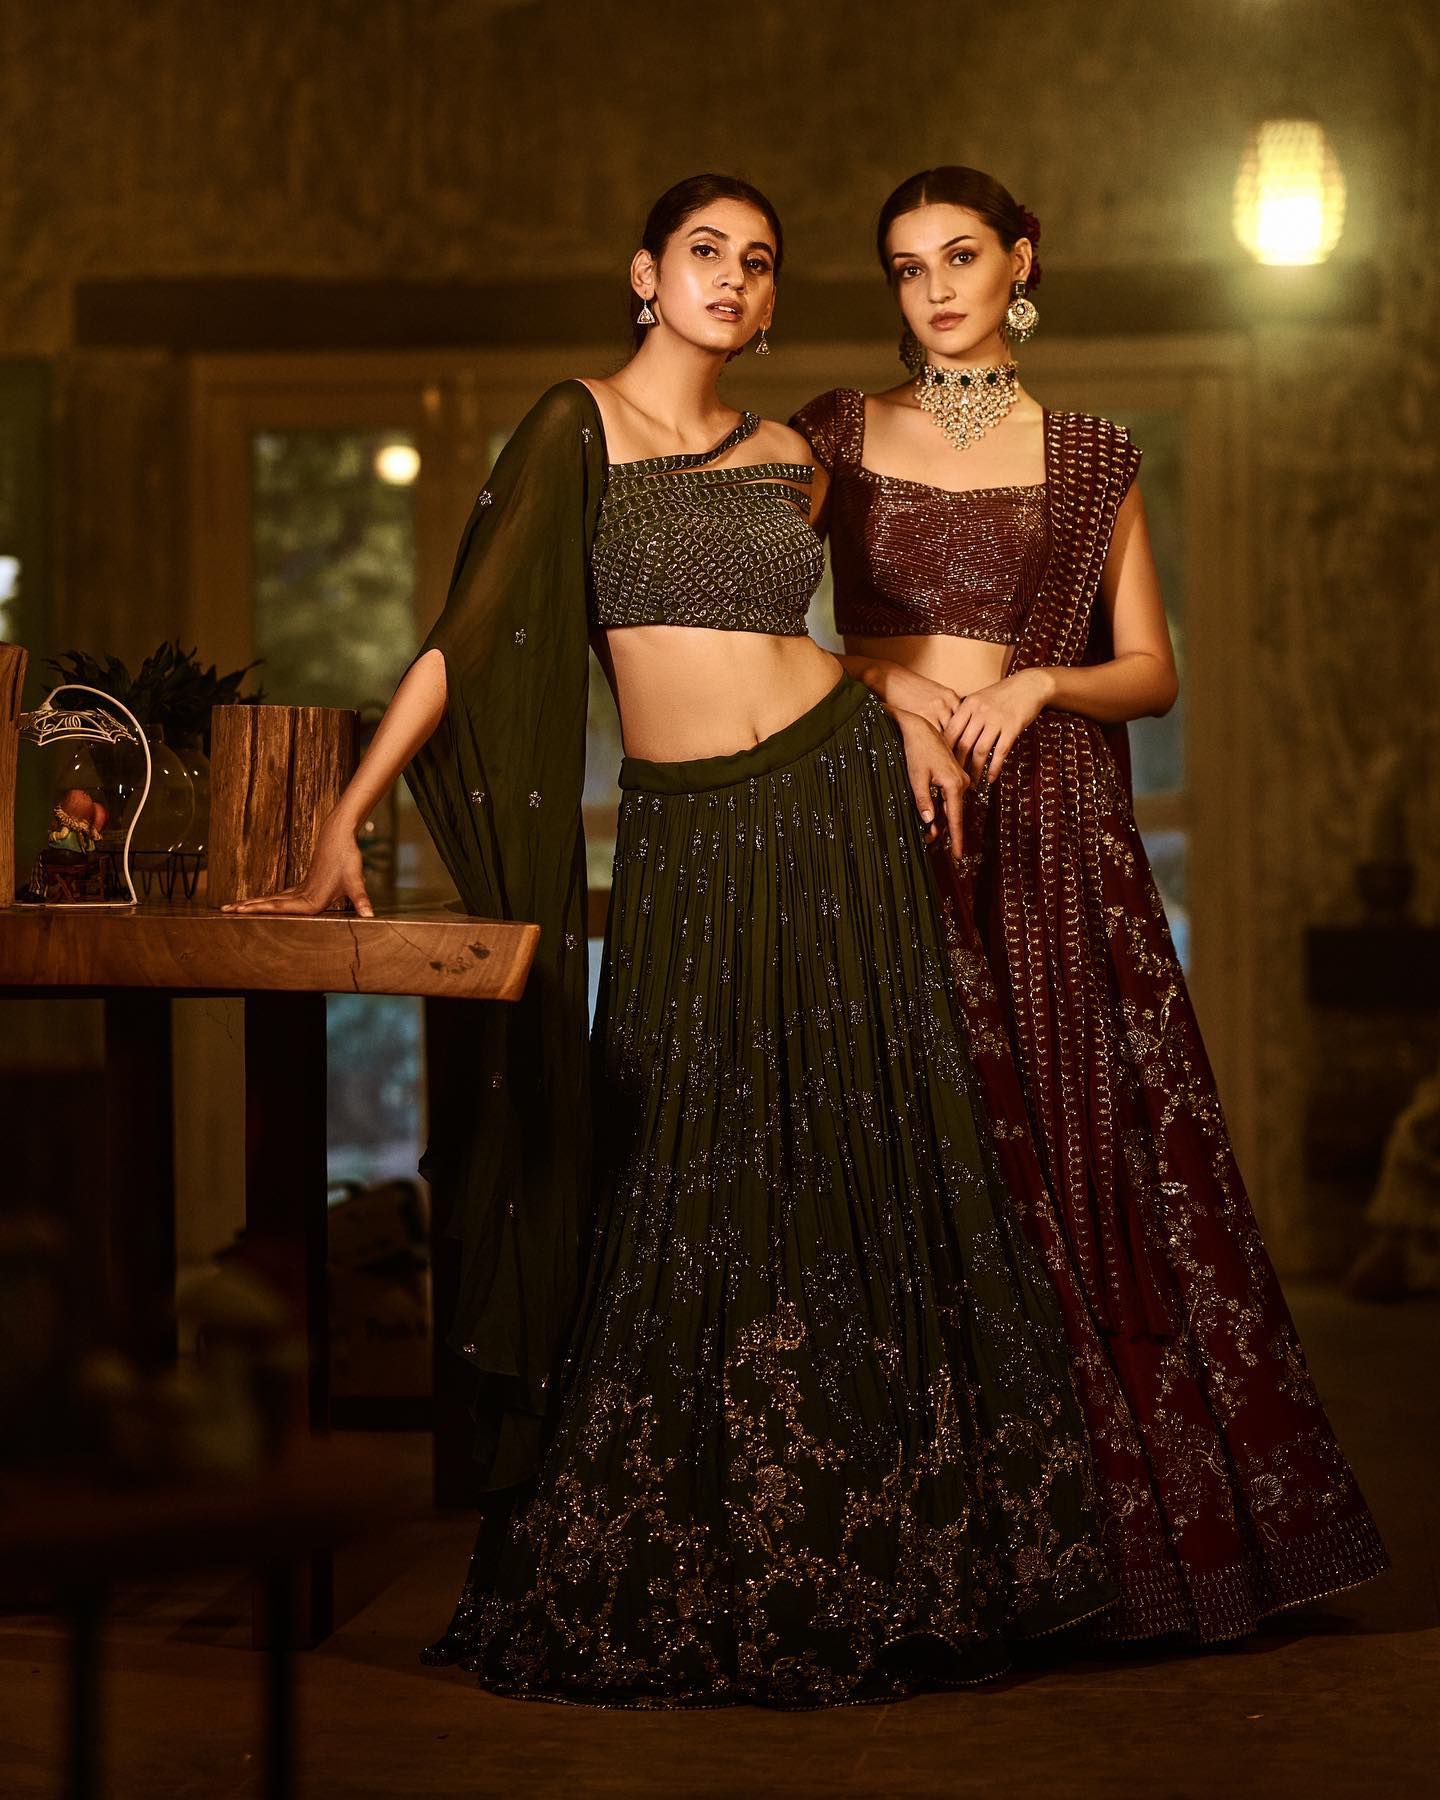 Phulwari . Gulshaat and Andleeb seen in intricately embroidered cutdana lehengas. These lehengas were made by using very fine hand embroidered techniques by skilled craftsmen. They are made with lots of love for the modern glittery bride.  To shop new collection Phulwari DM  or Whatsapp  on +91 6302 878 533 2021-06-24